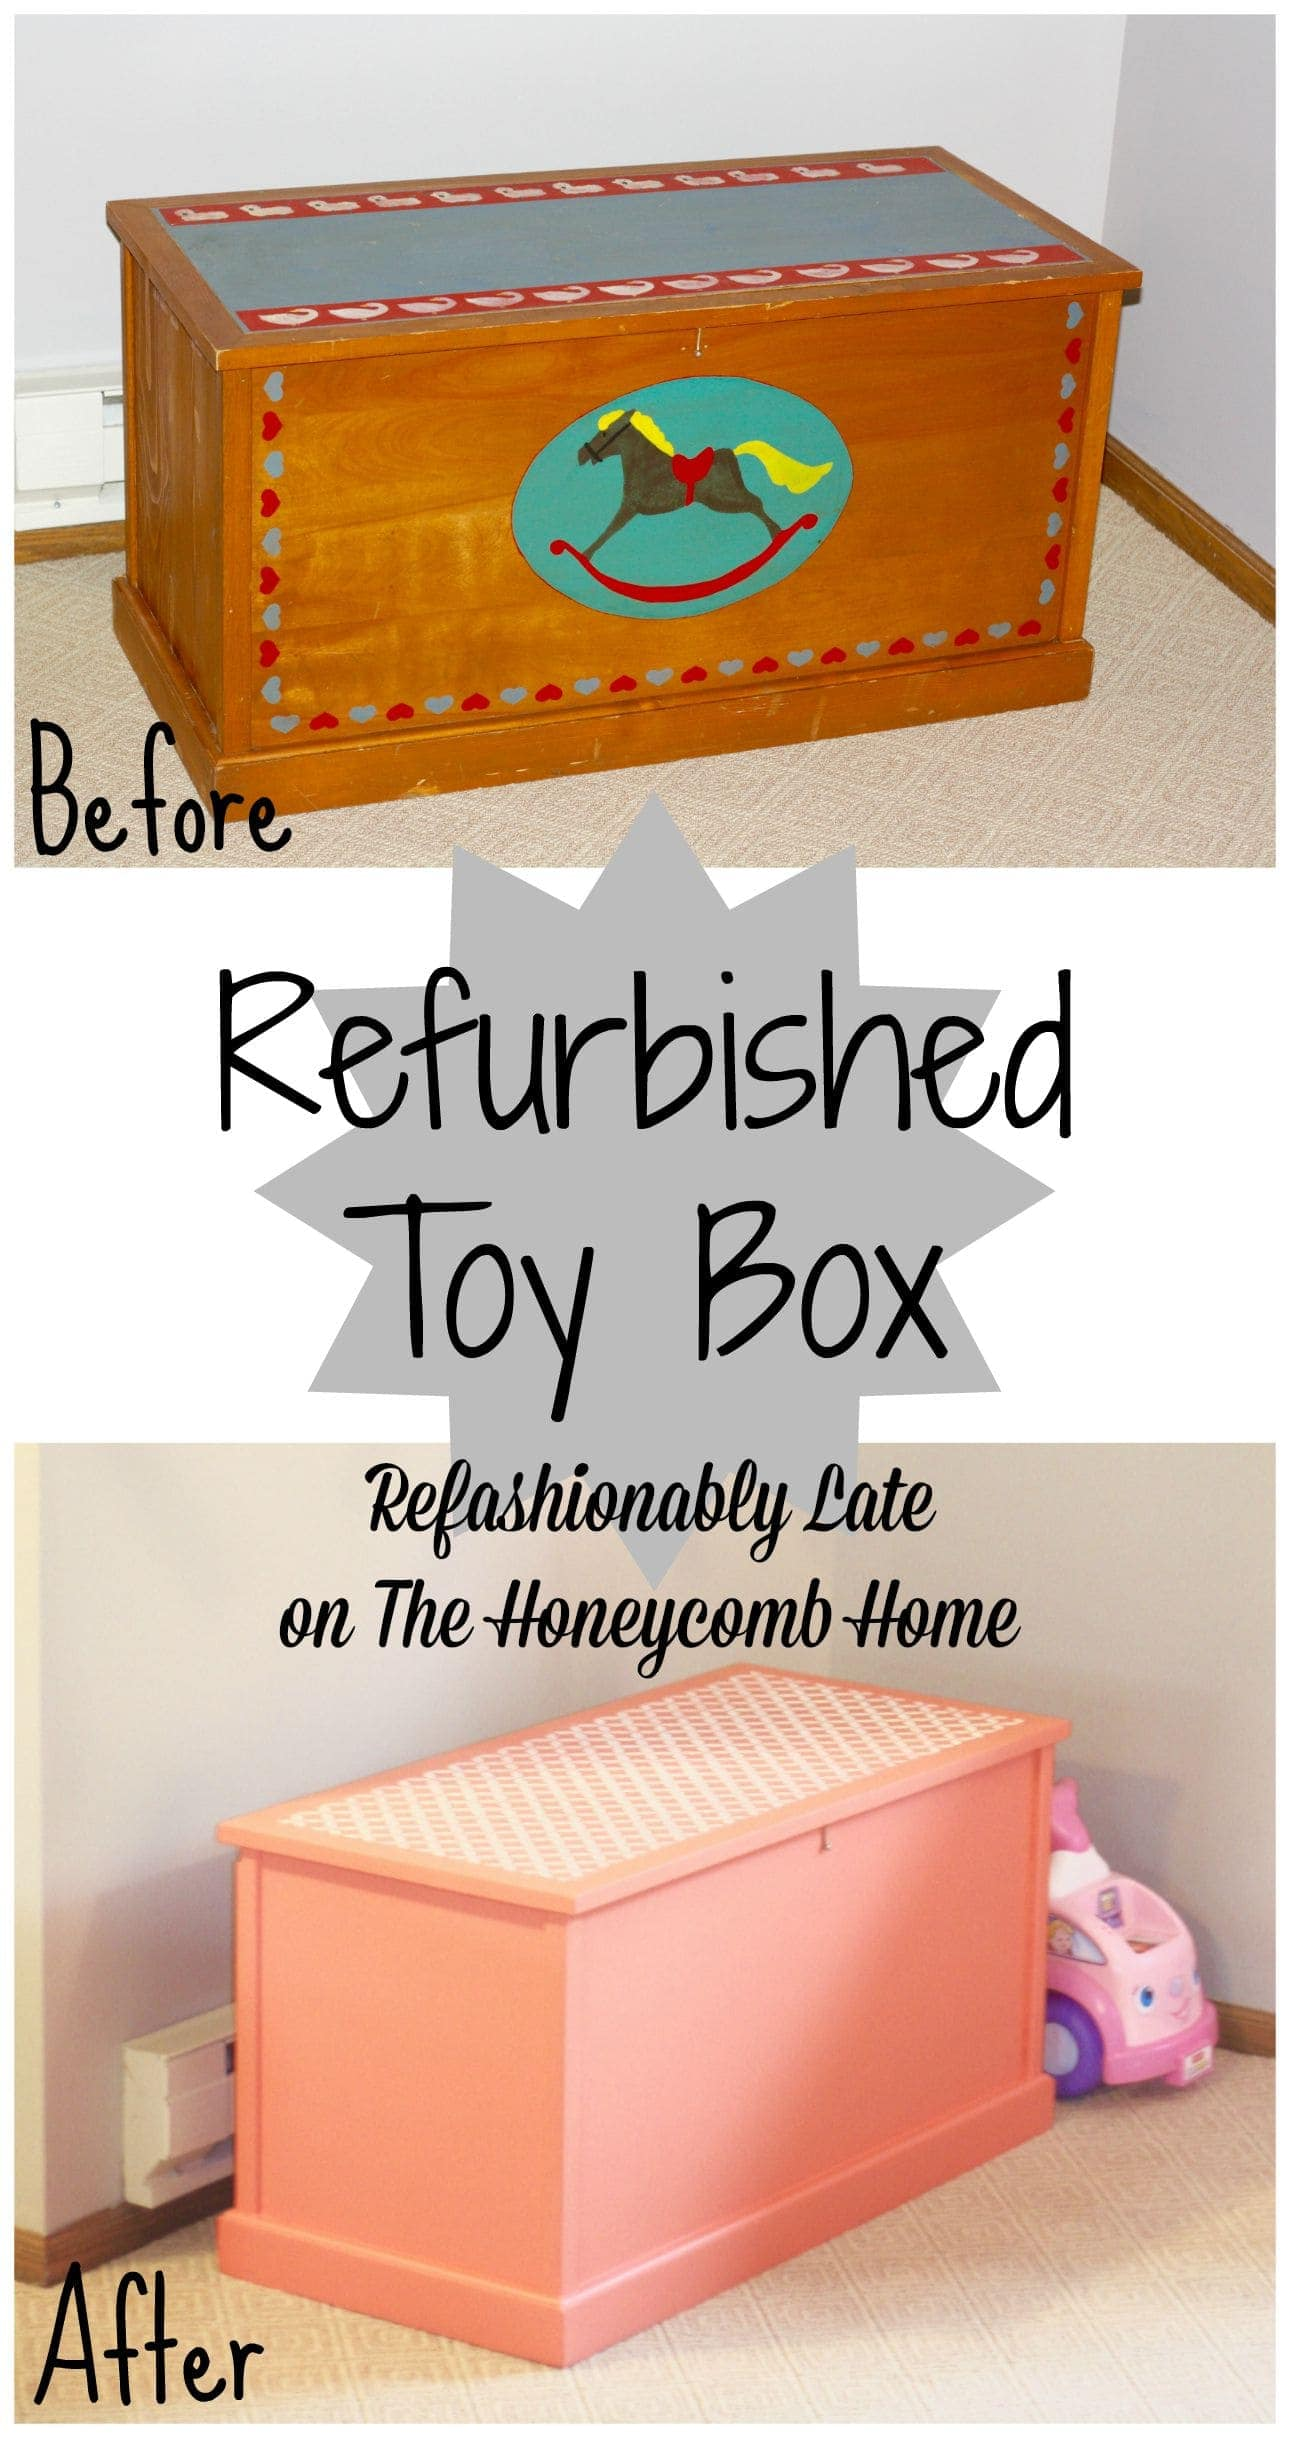 Refurbished Toy Box - www.refashionablylate.com